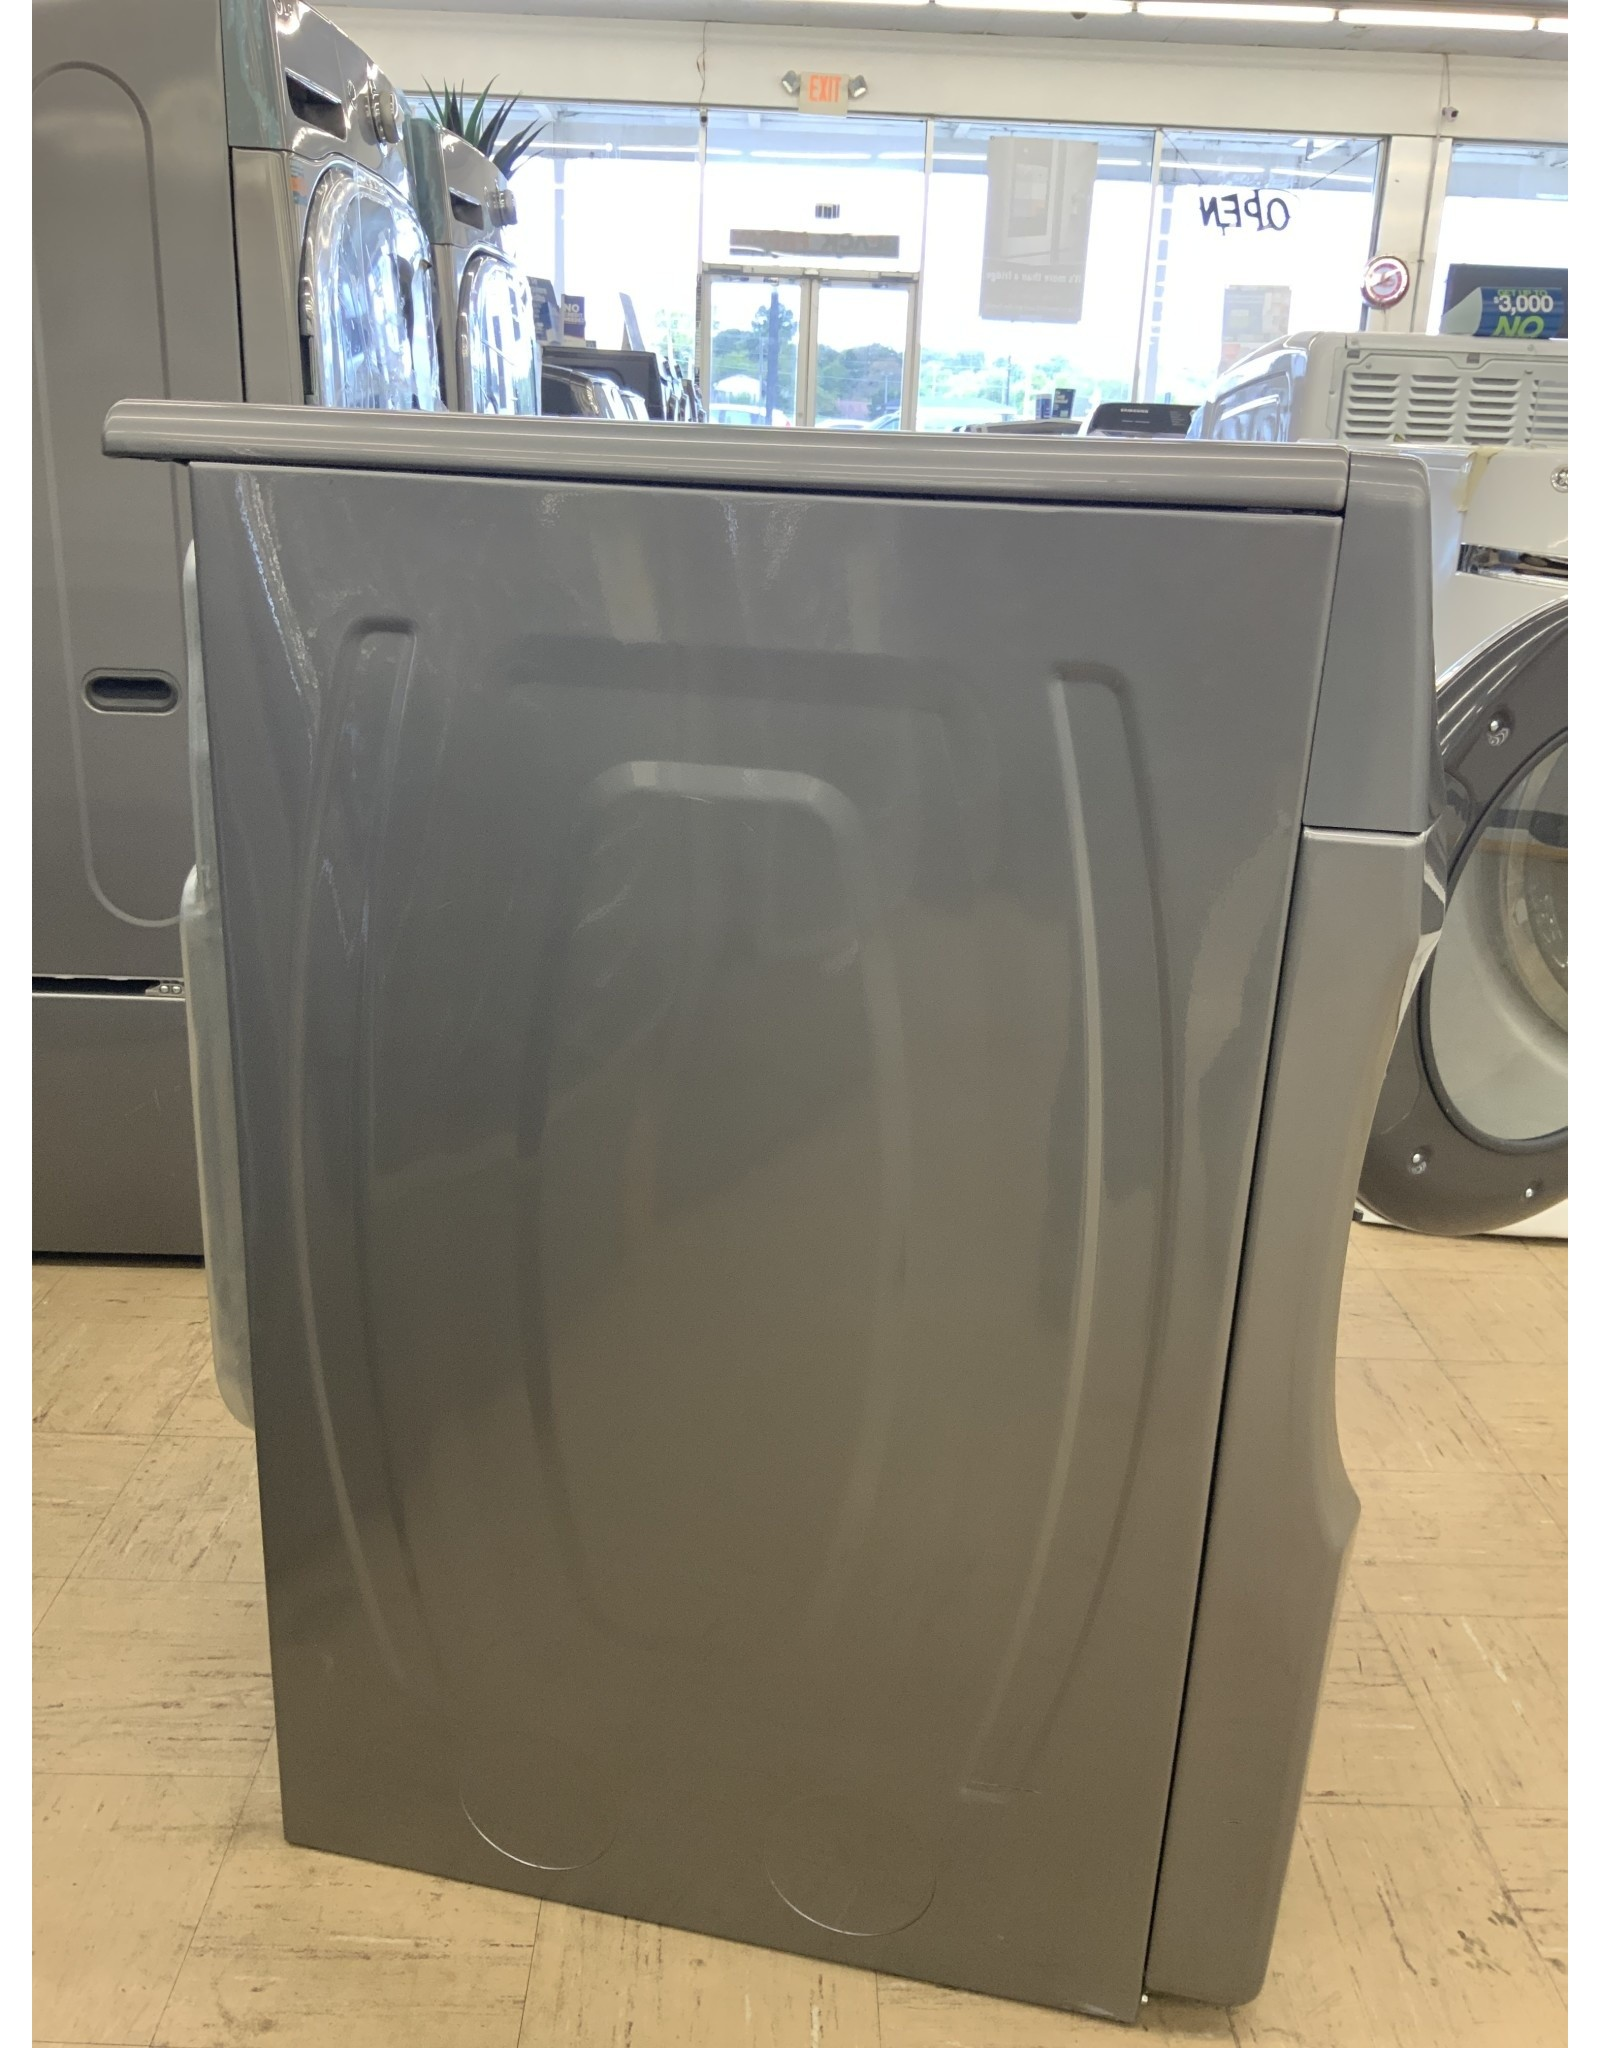 WHIRLPOOL 4.5 cu. ft. High Efficiency Chrome Shadow Stackable Front Load Washing Machine with Load & Go XL Dispenser, ENERGY STAR